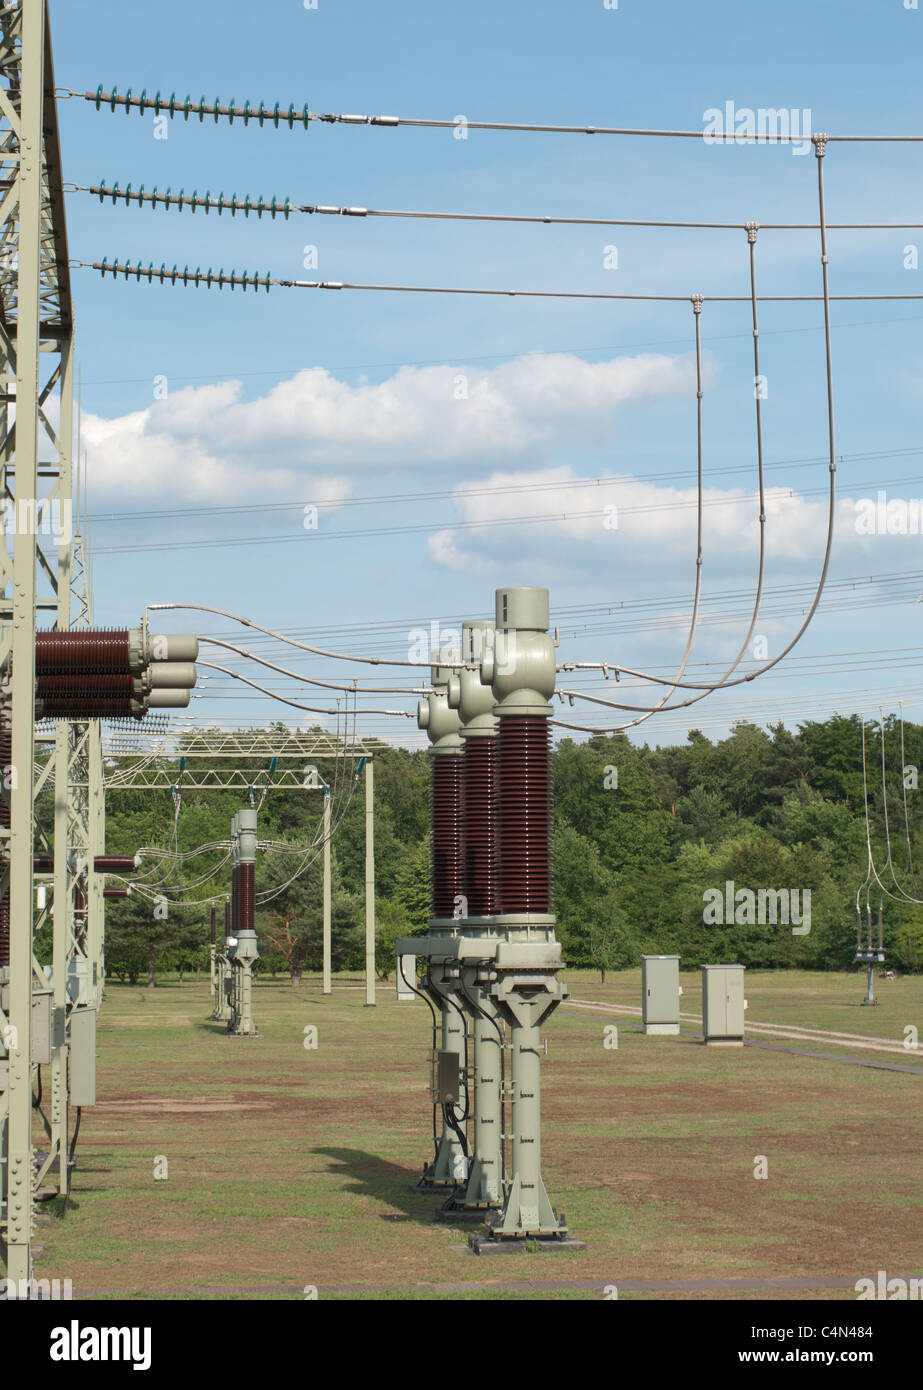 Electric Power Transformation Station - Stock Image